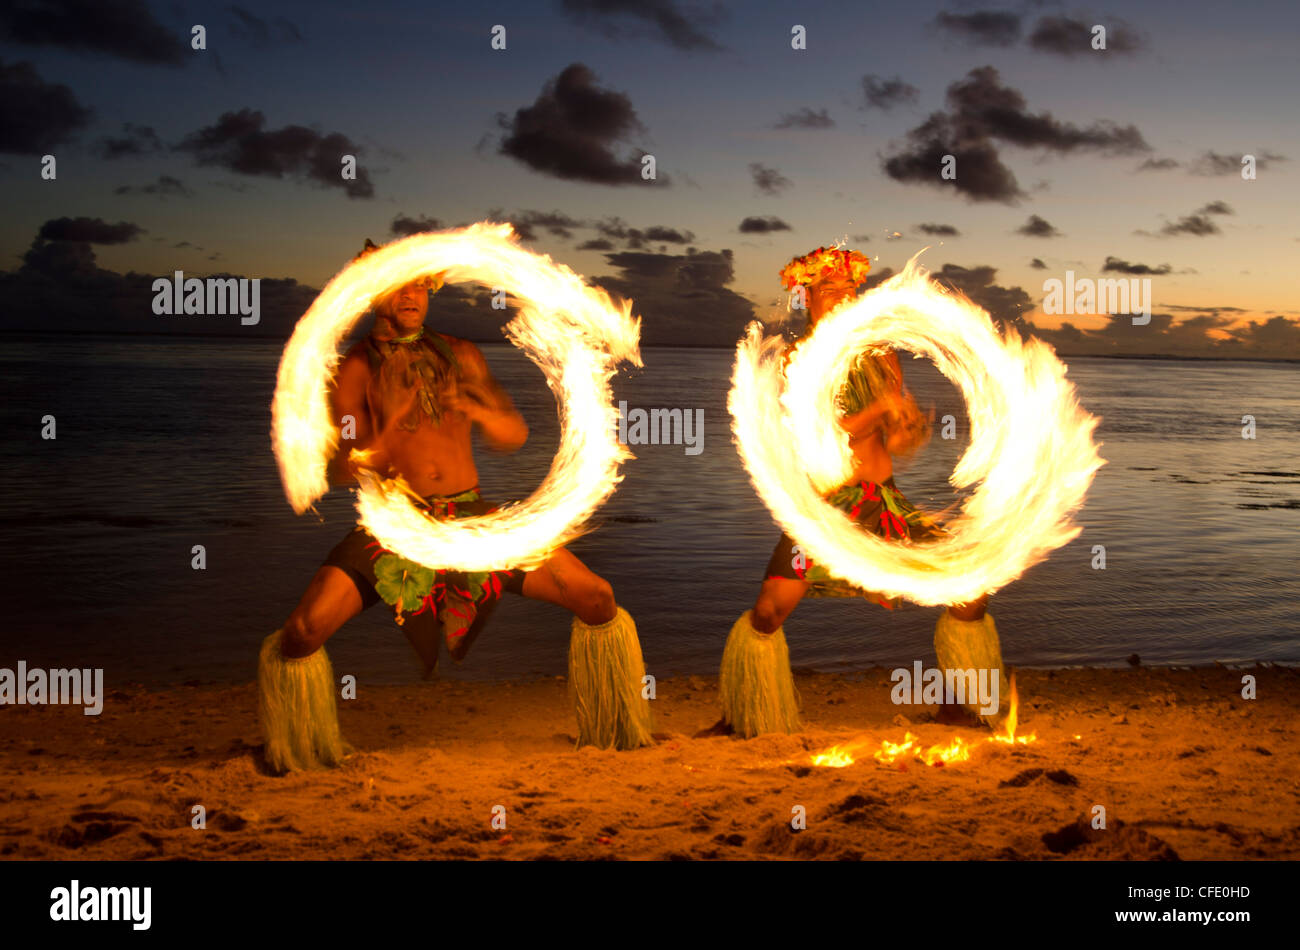 Fire Dance, Viti Levu, Fiji, Melanesia, Oceania, Pacific Islands, Pacific - Stock Image